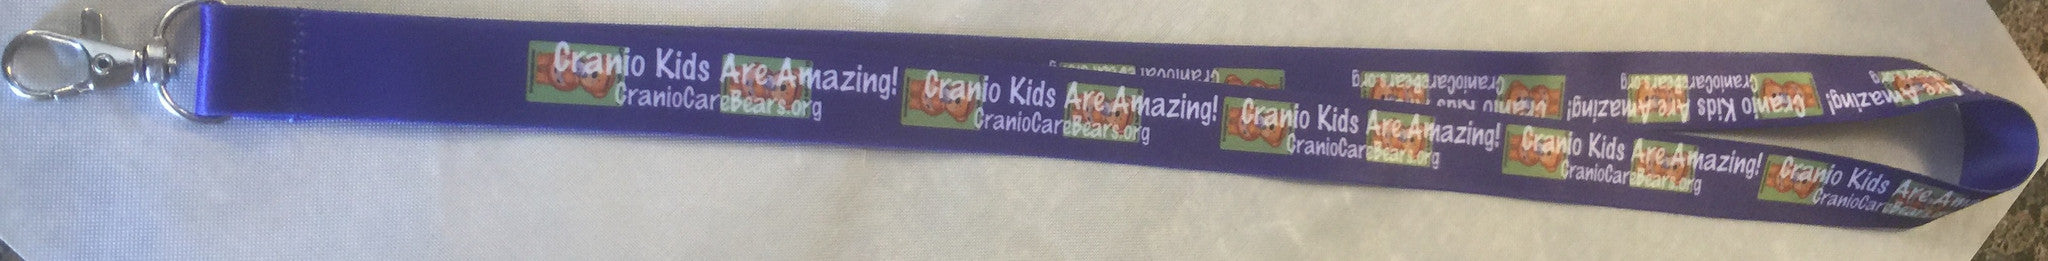 Cranio Kids Are Amazing Lanyard